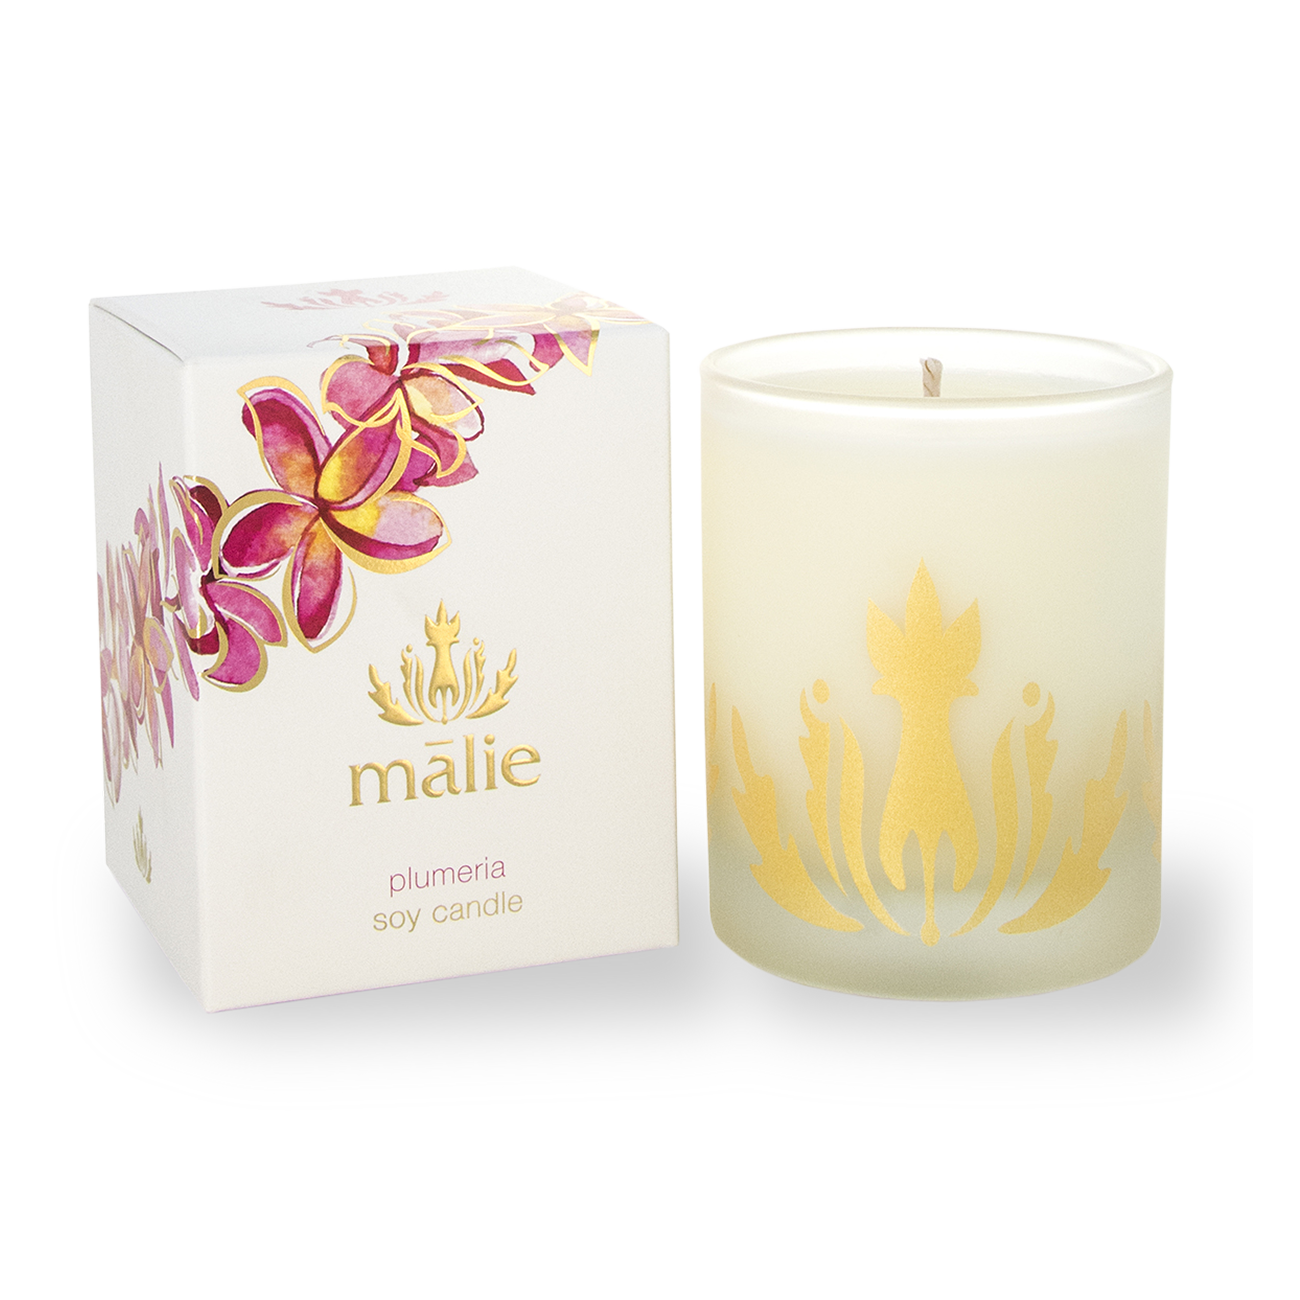 Plumeria Soy Candle